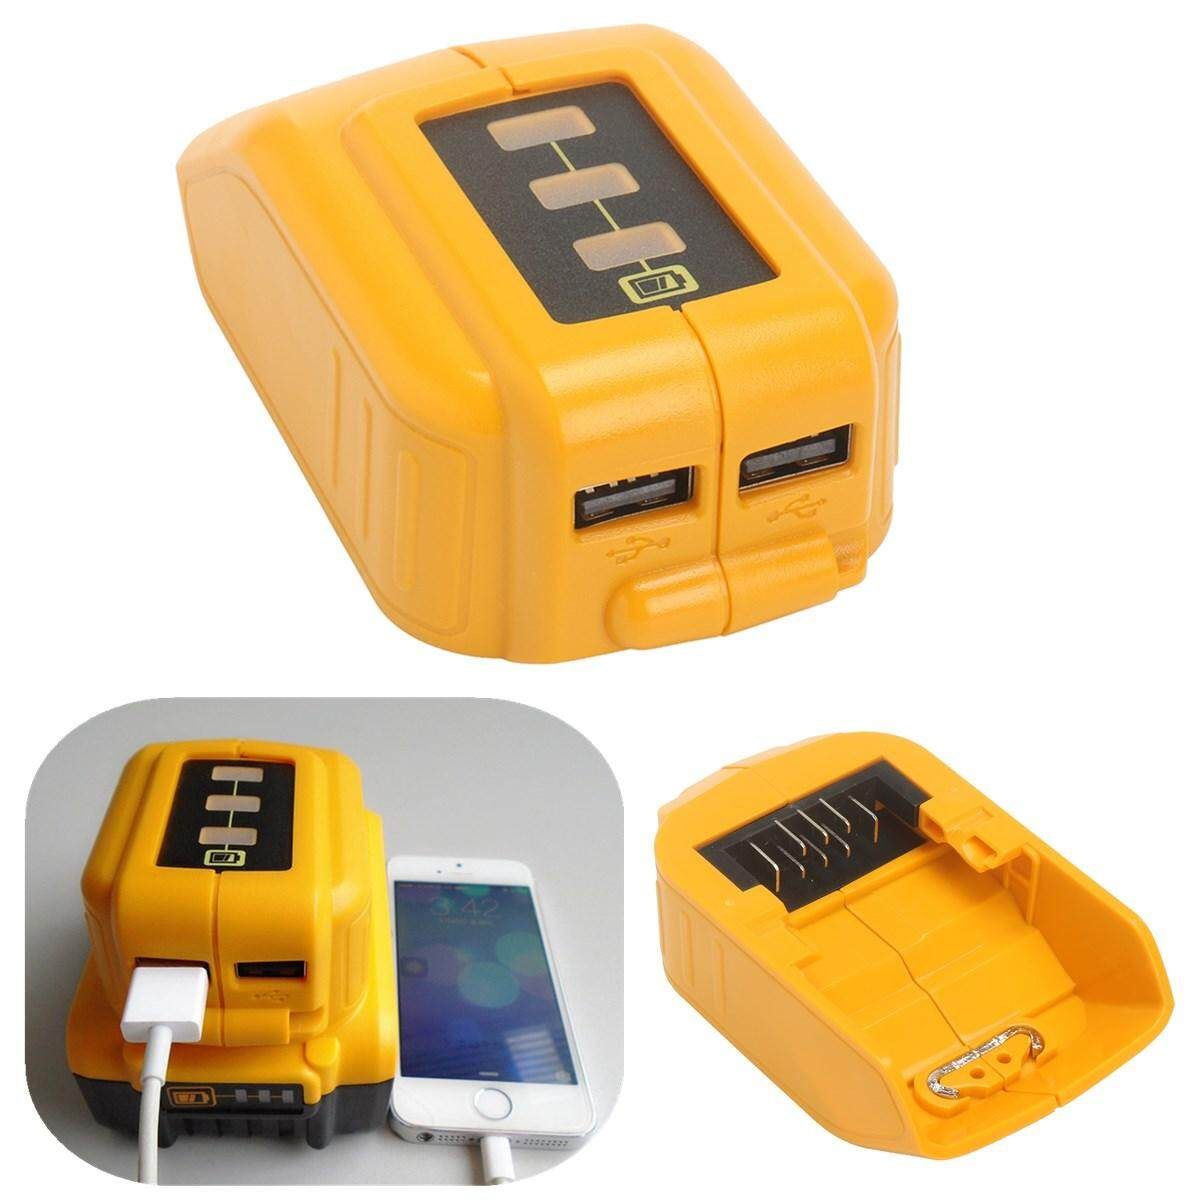 Spesifikasi New Usb Mobile Battery Charger Adapter For Dewalt 10 8V 20V Slide Dcb184 Dcb09 Intl Lengkap Dengan Harga